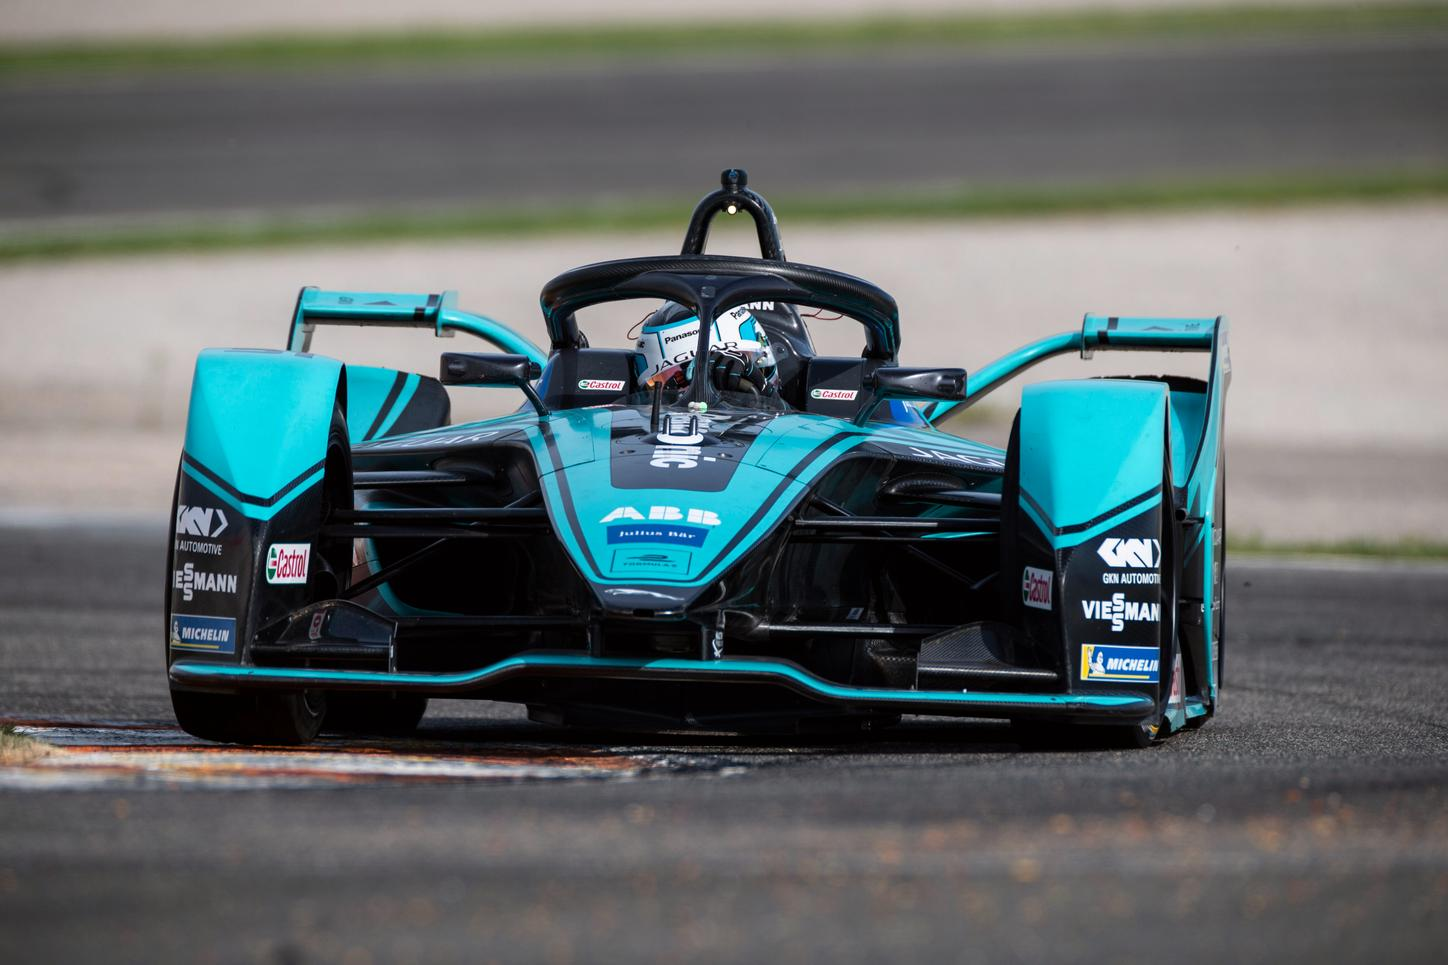 The picture shows a turquoise Formula E racing car.